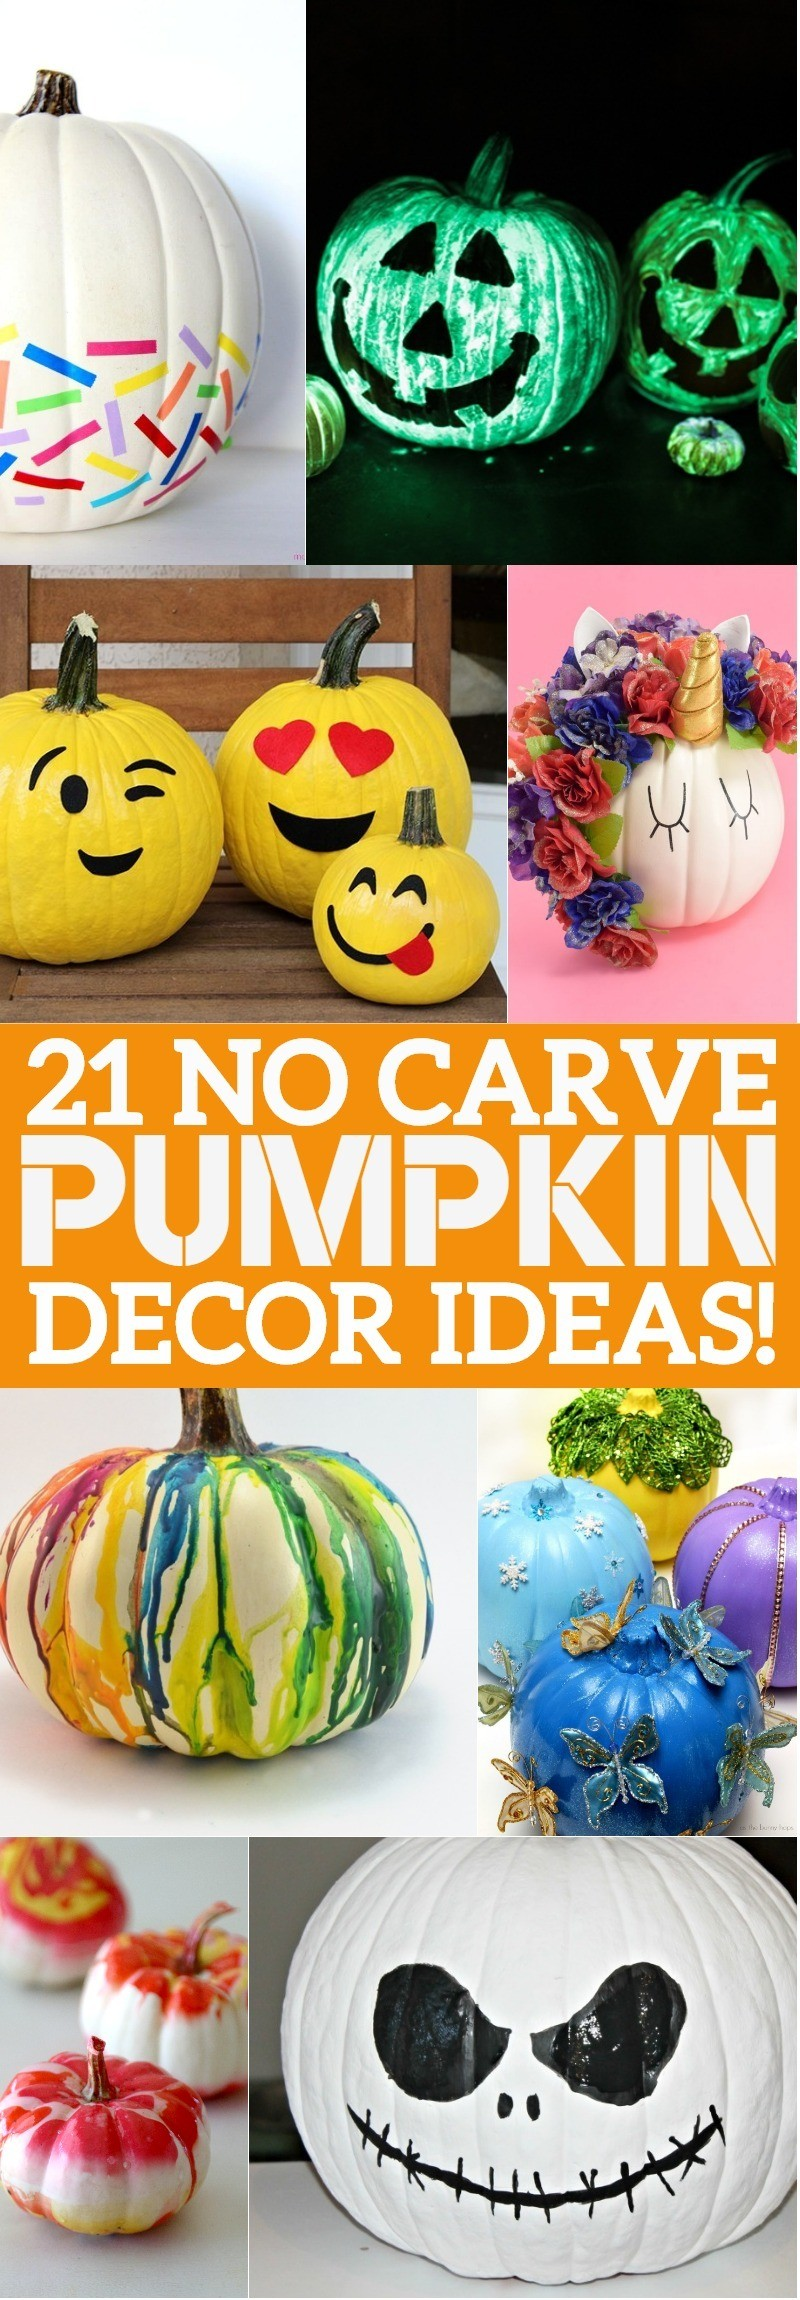 21 no carve pumpkin decorating ideas youll love these ways to decorate pumpkins here comes halloween